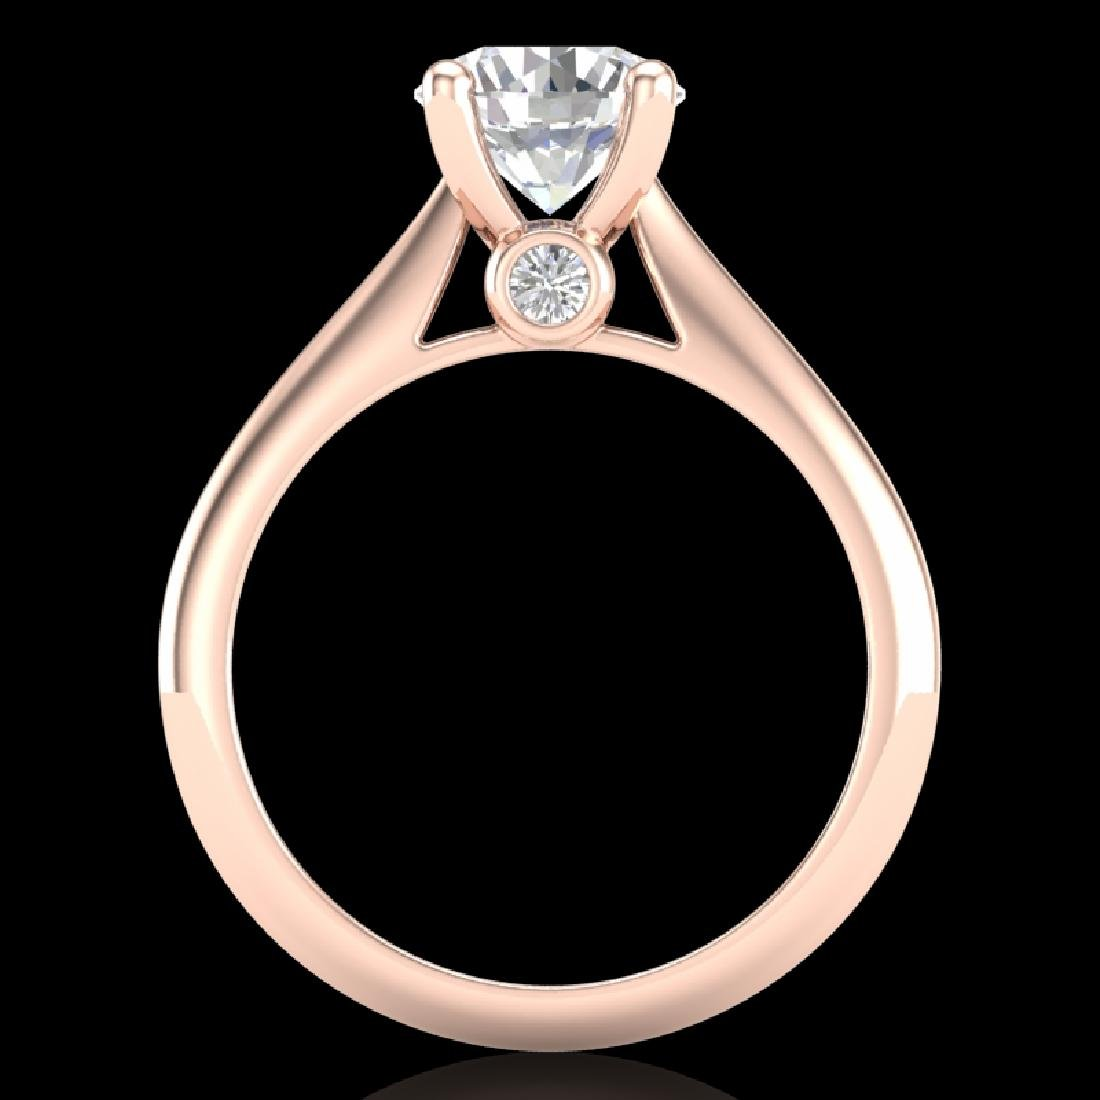 1.6 CTW VS/SI Diamond Art Deco Ring 18K Rose Gold - 3